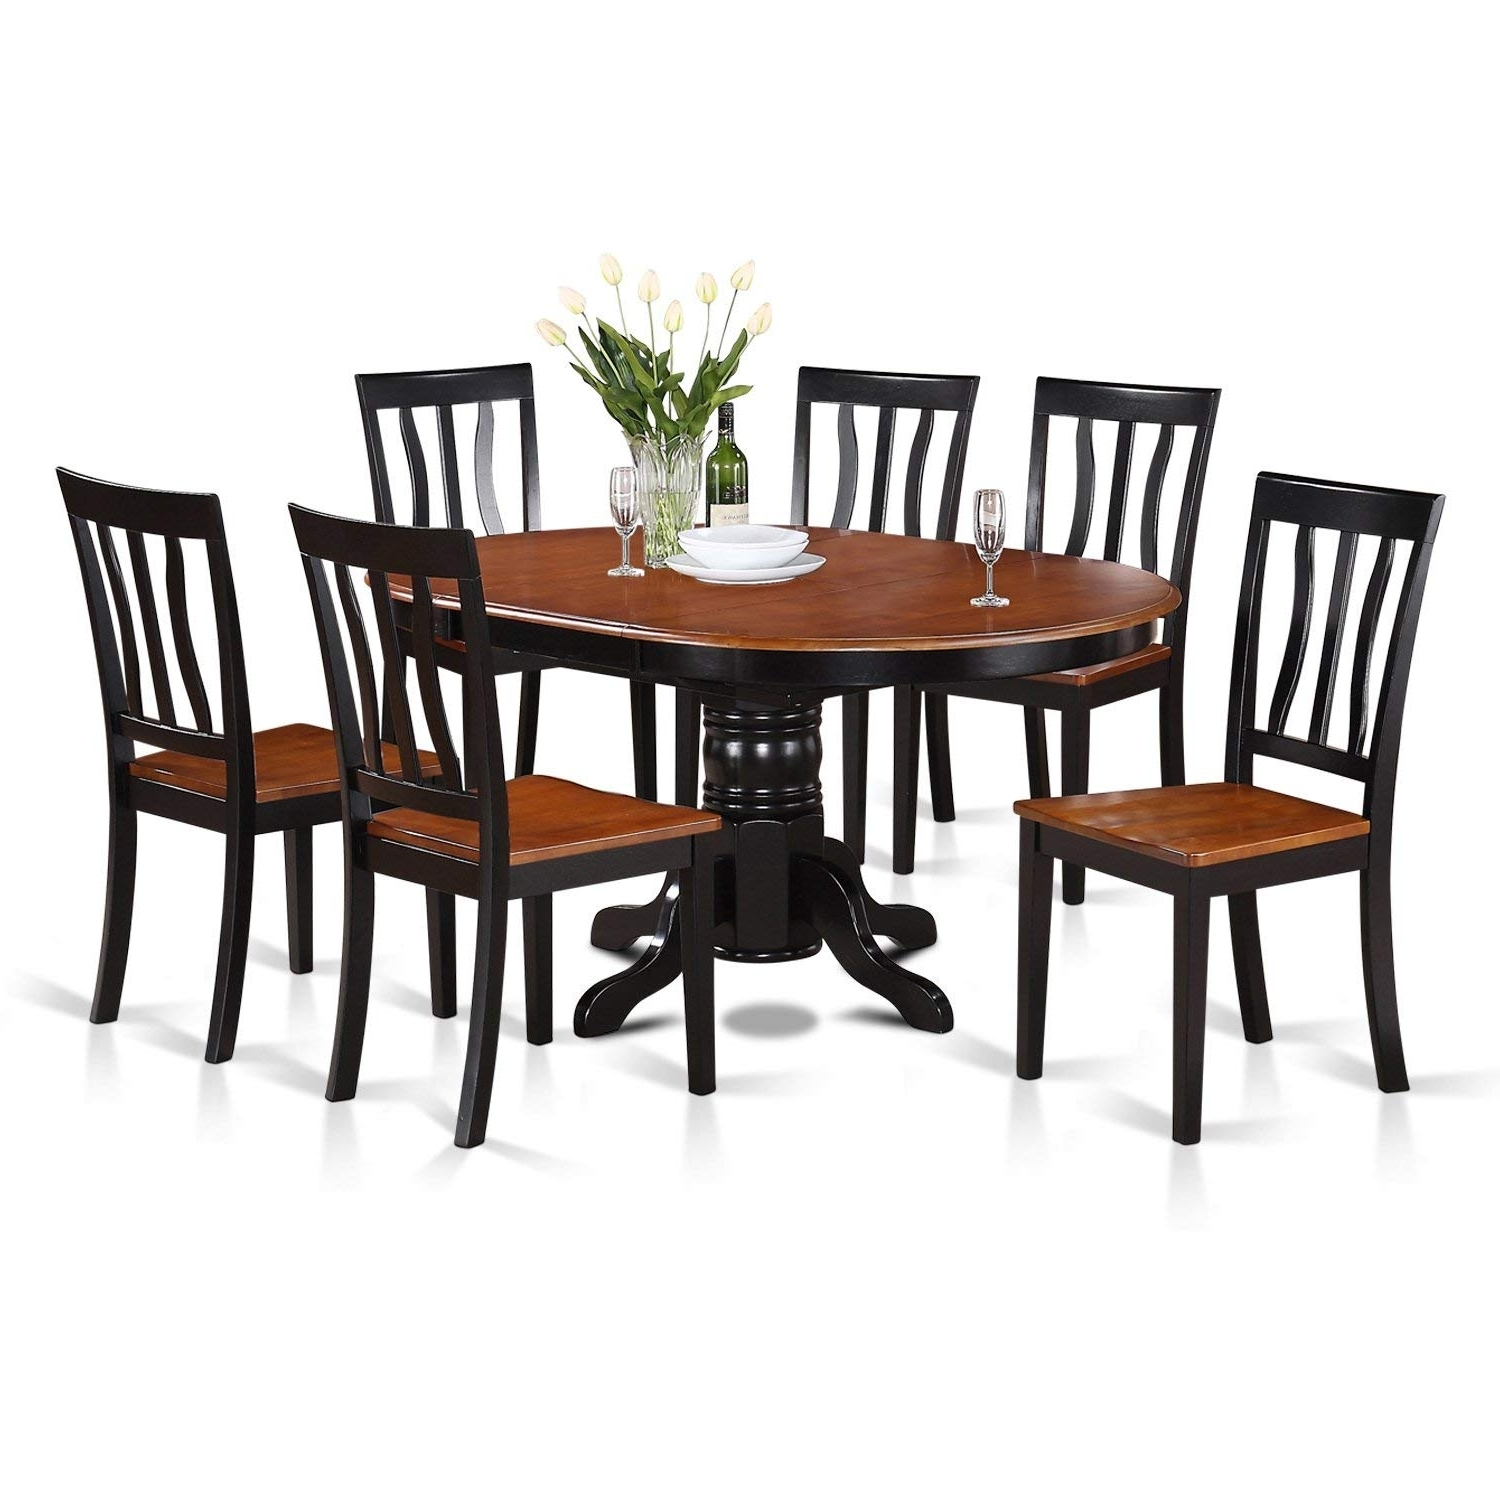 Craftsman 5 Piece Round Dining Sets With Uph Side Chairs In Fashionable Amazon: East West Furniture Avat7 Blk W 7 Piece Dining Table Set (Gallery 1 of 25)